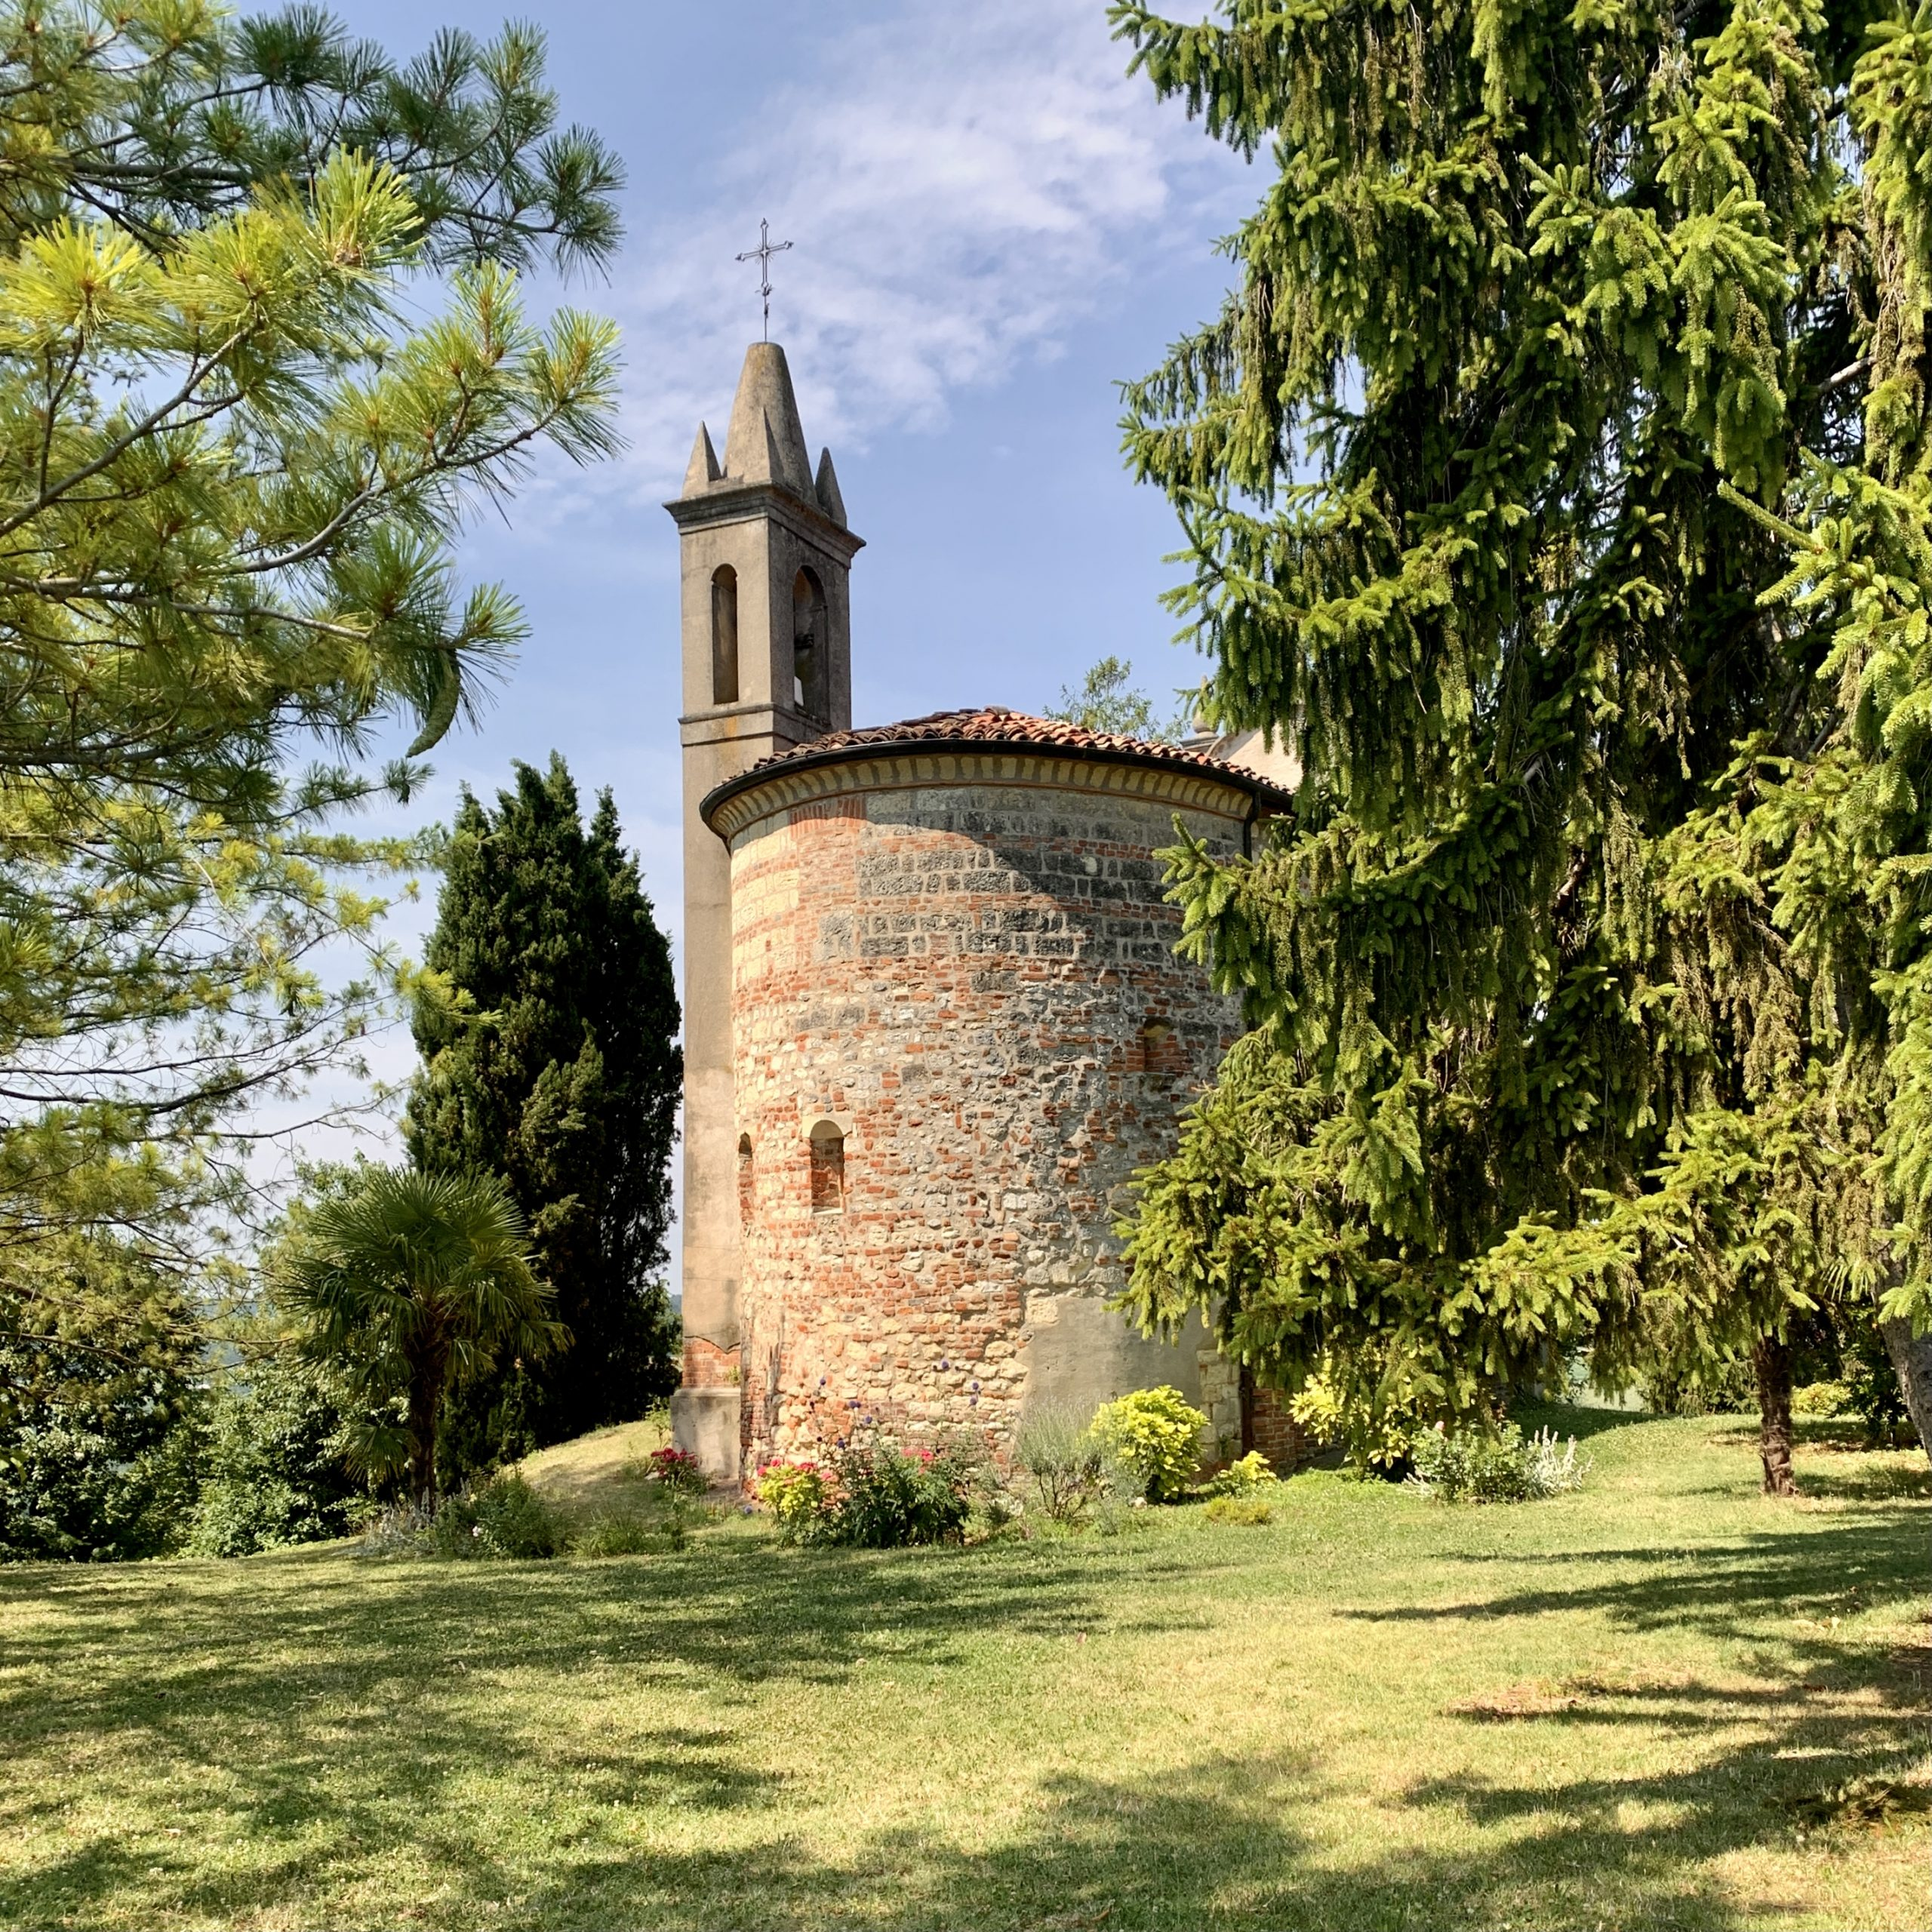 Church dedicated to San Quintino, the children' protector